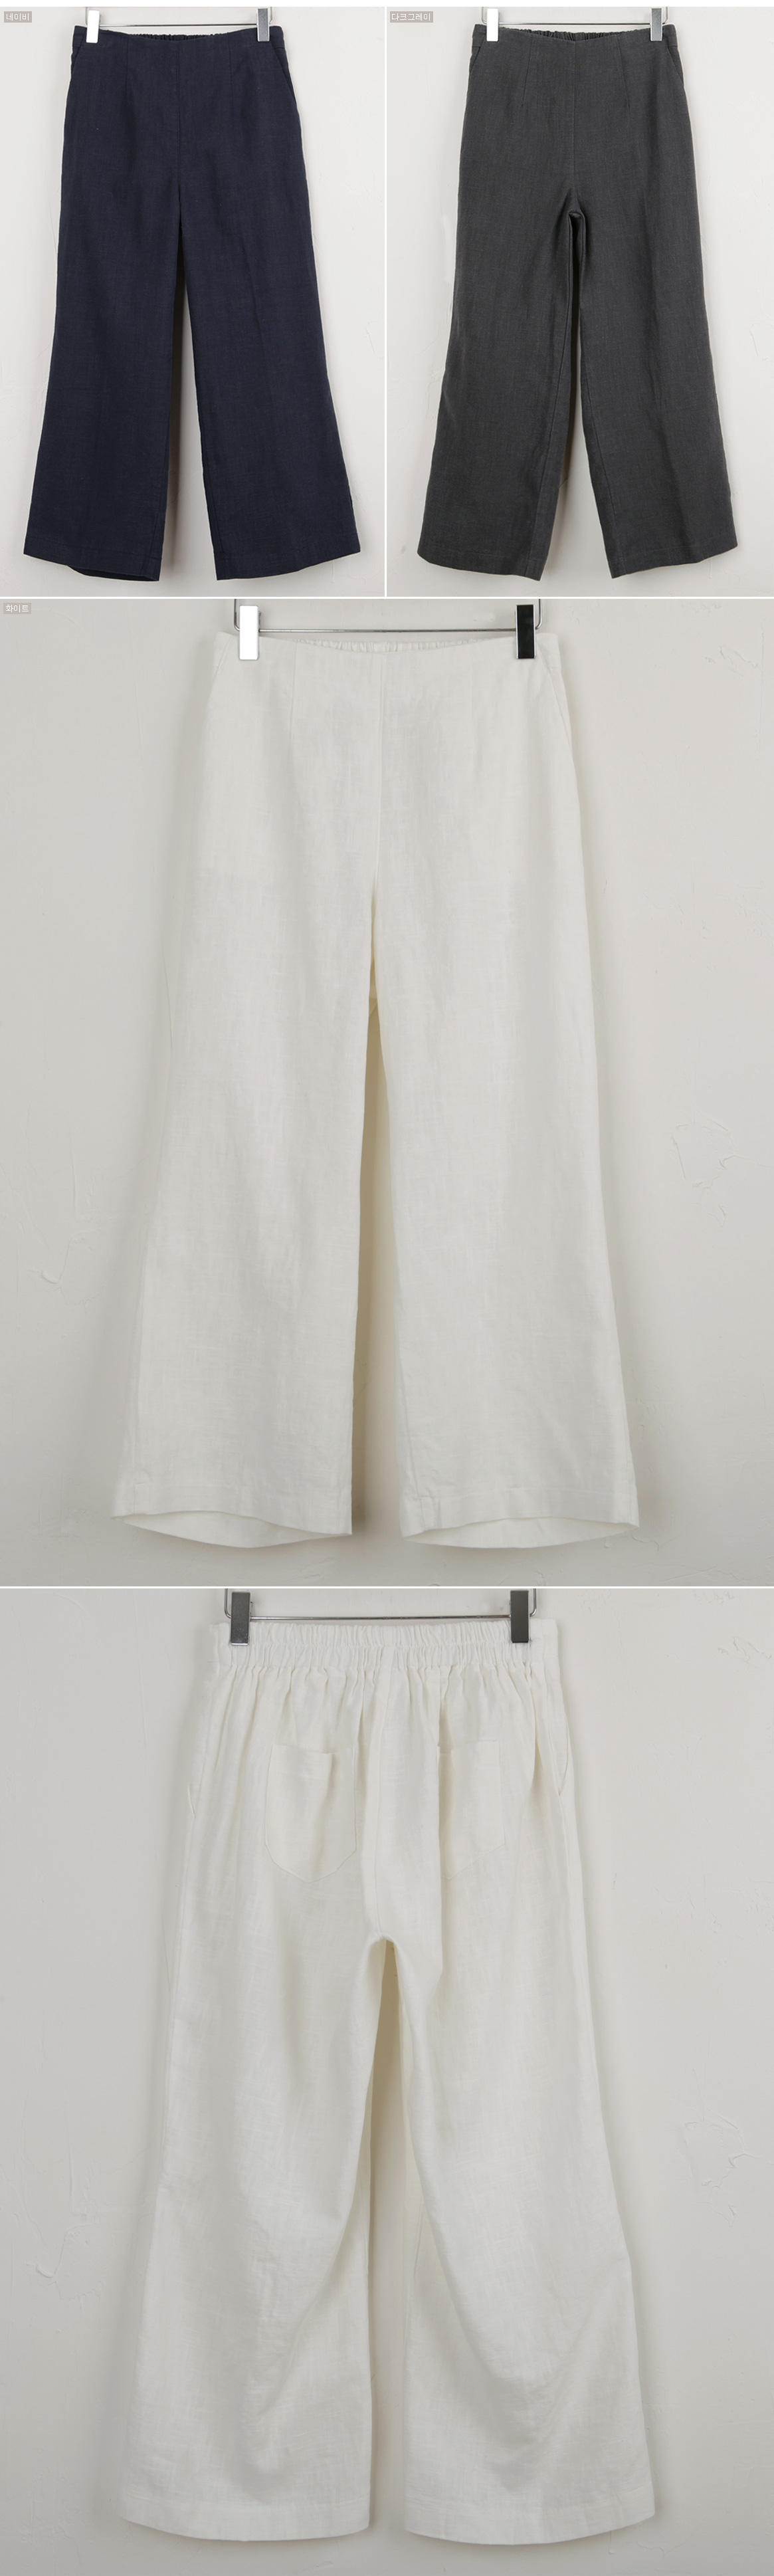 8 annex linen pants (4 colors)